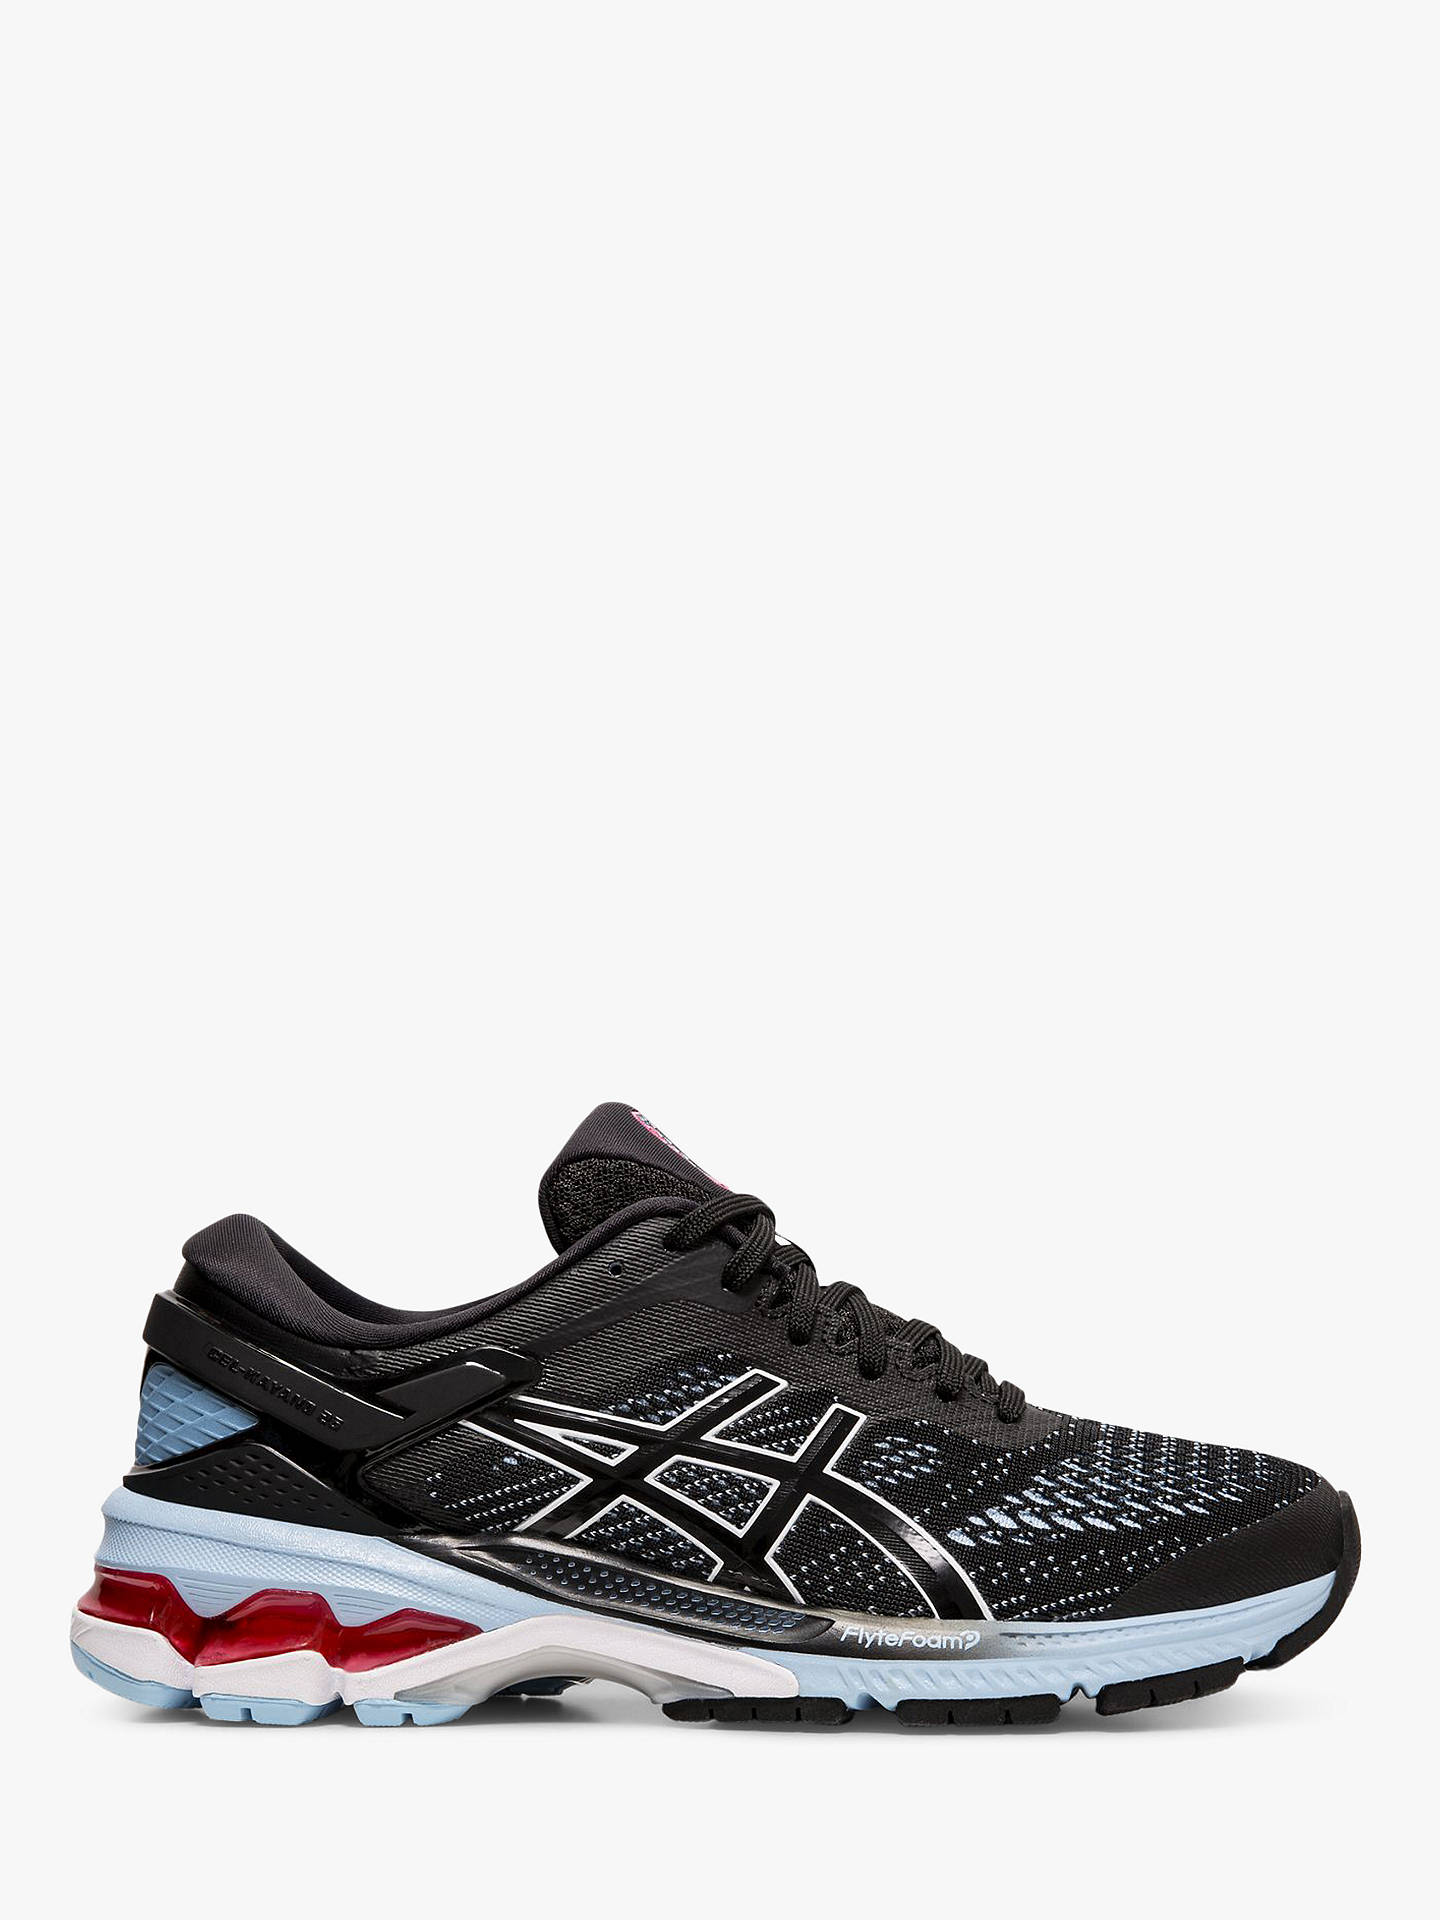 finest selection 68fad 59d4a ASICS GEL-KAYANO 26 Women's Running Shoes, Black/Heritage Blue